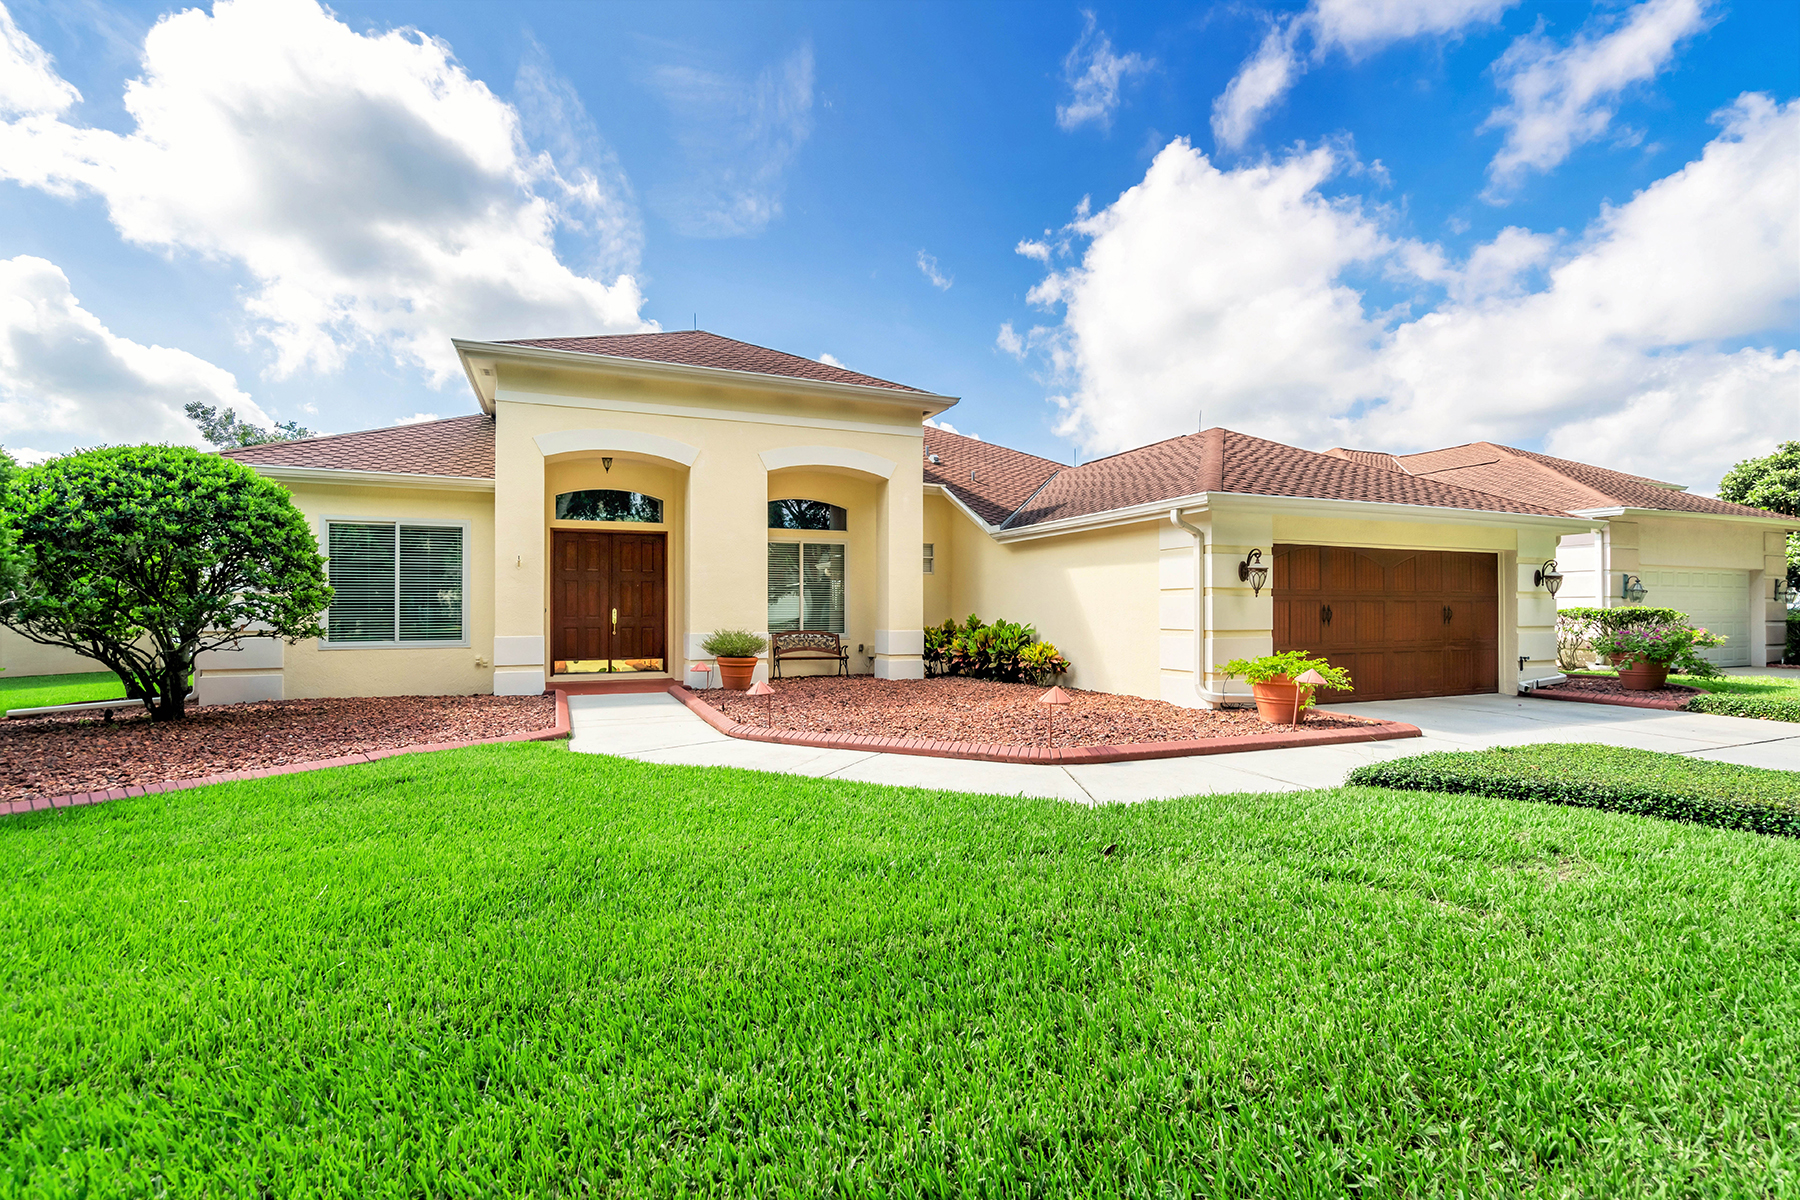 Single Family Homes for Sale at ORLANDO - LAKE MARY - HEATHROW 1367 Tadsworth Ter Lake Mary, Florida 32746 United States